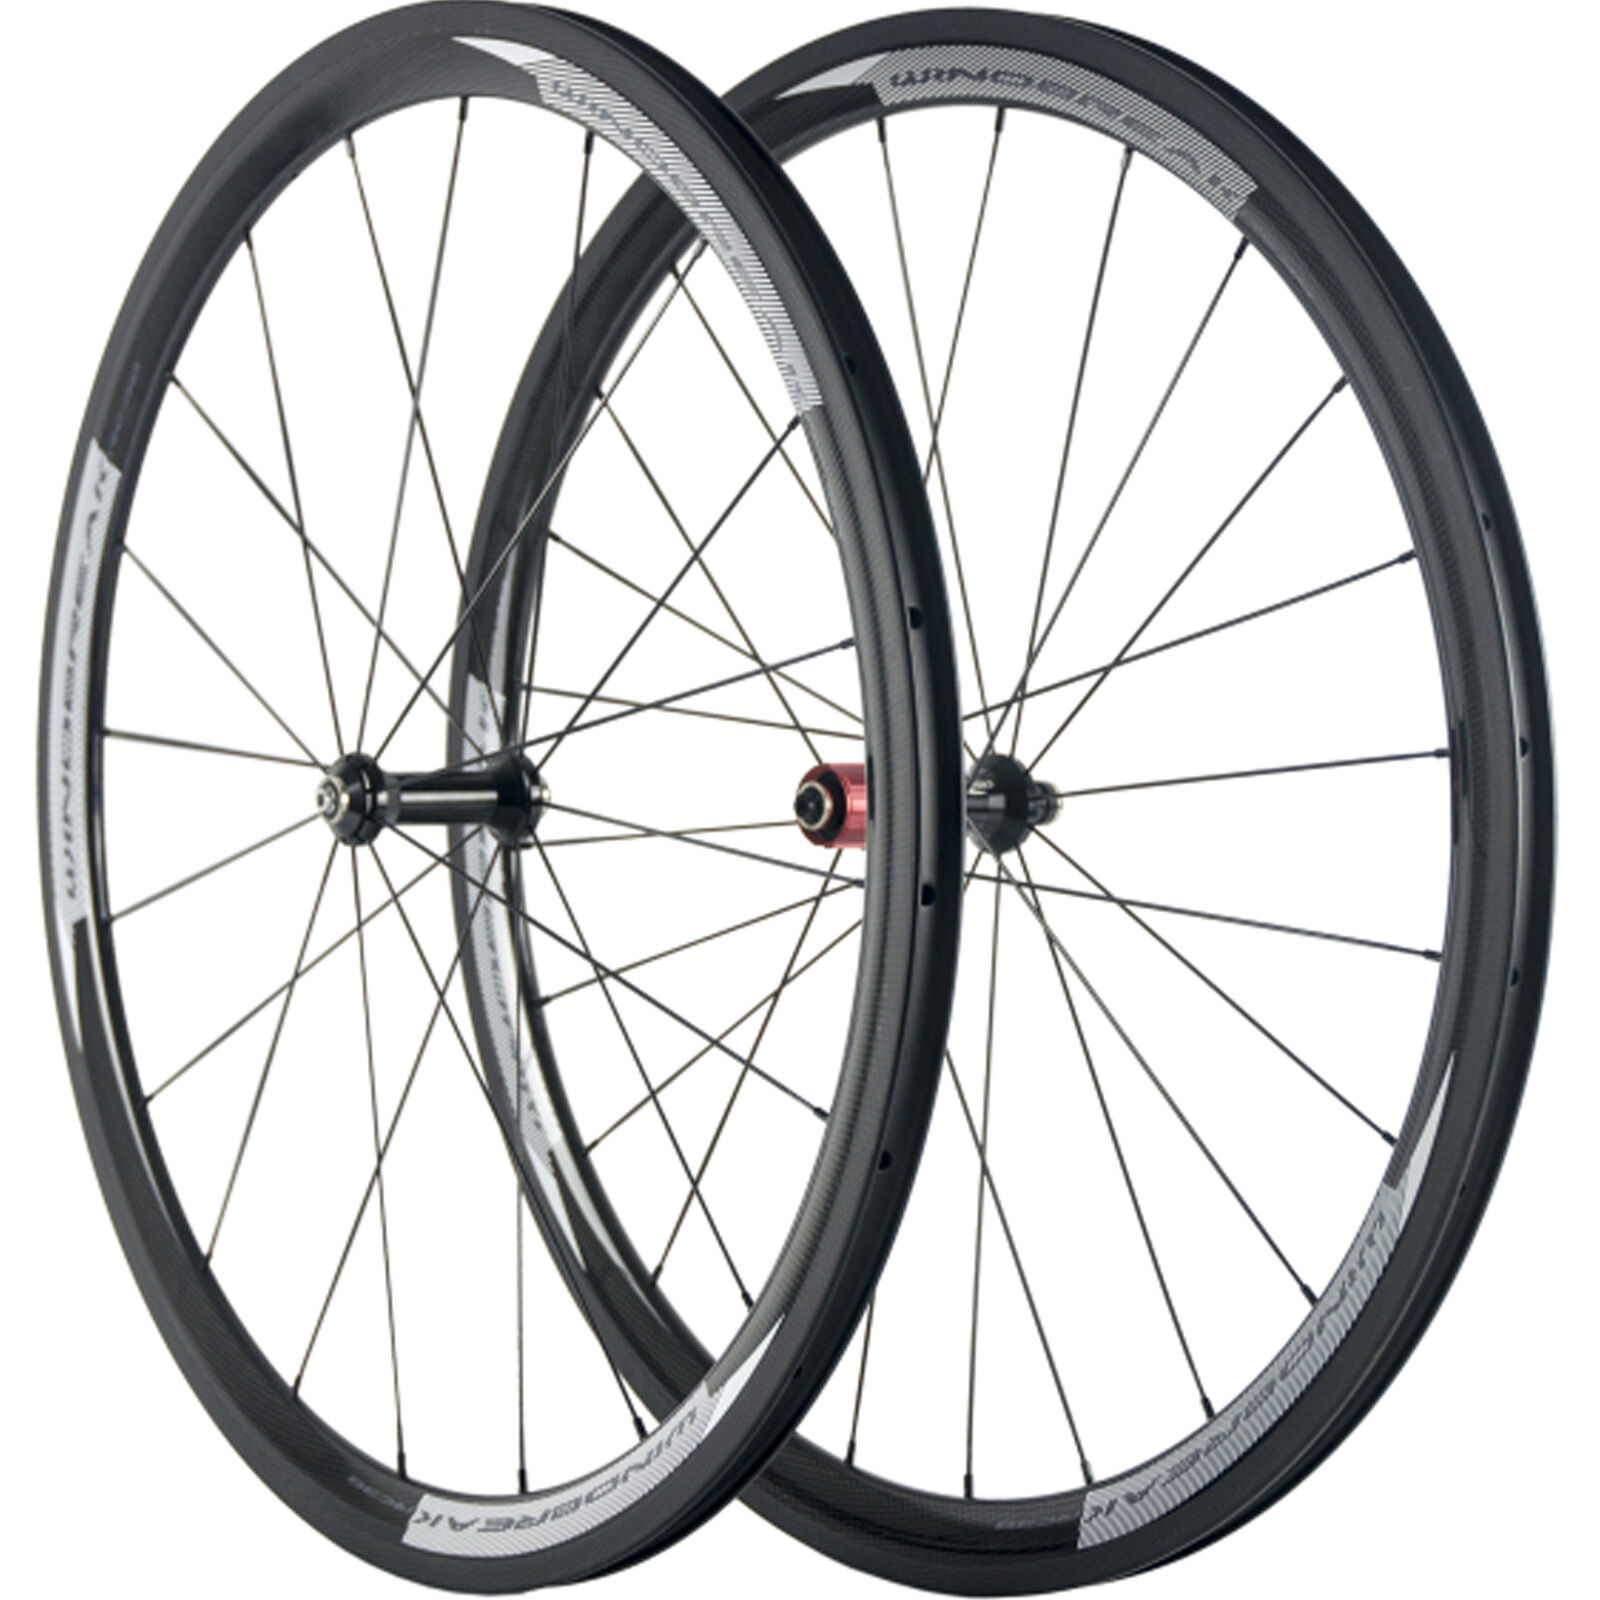 WINDBREAK T700 Carbon Wheel 38mm Road Bicycle Carbon Wheels Wheelset Clincher